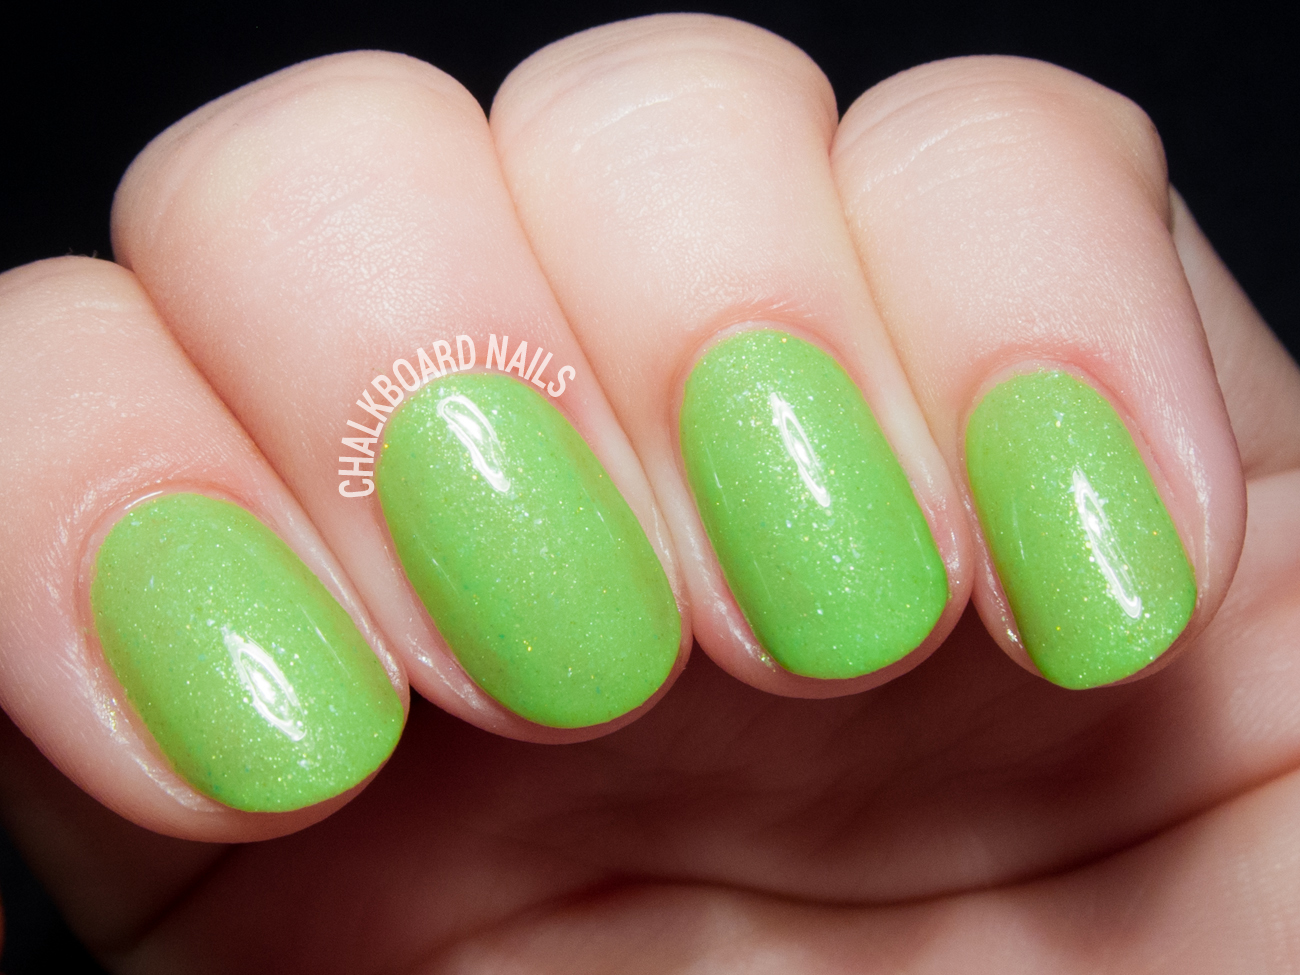 Serum No. 5 Kiwi Glow Now? via @chalkboardnails